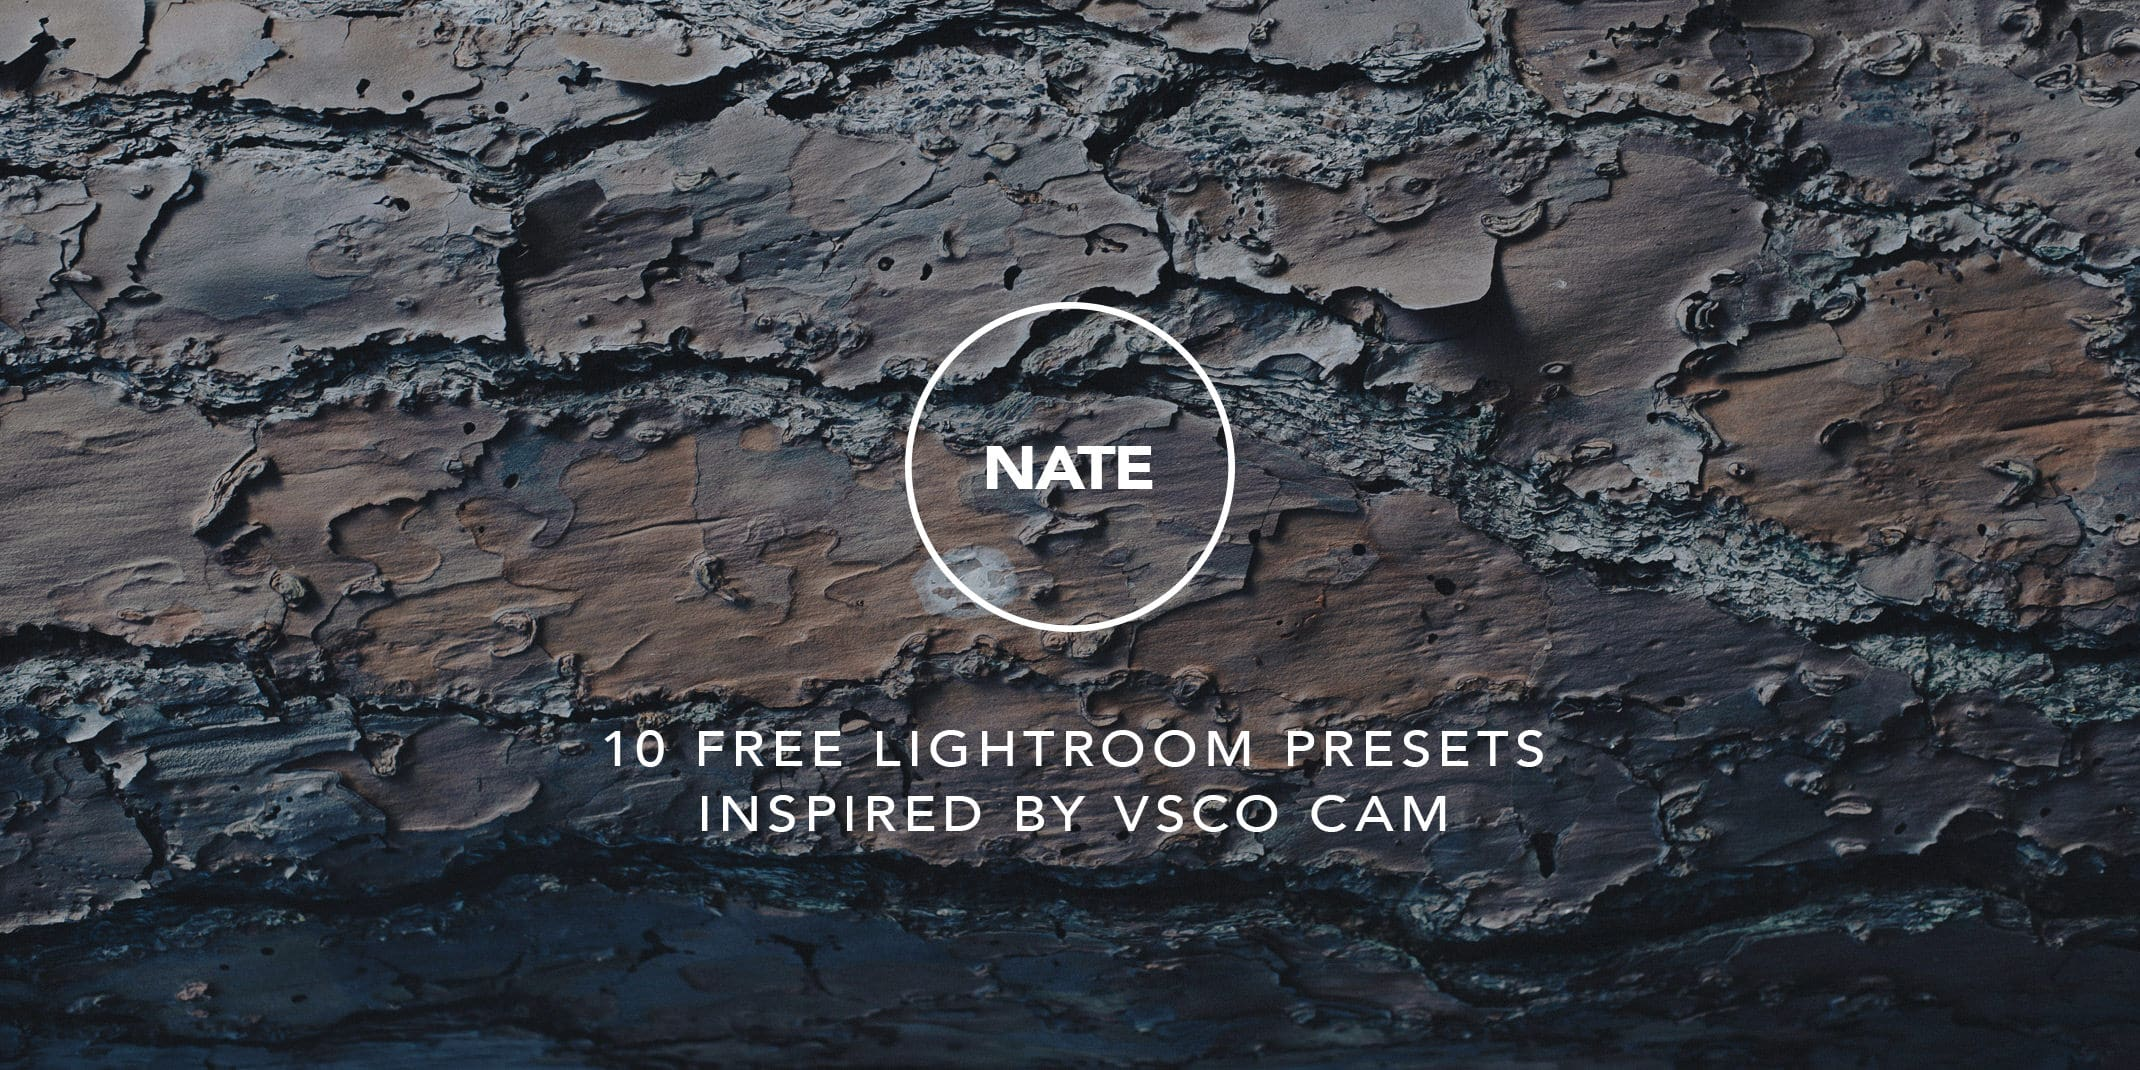 NATE CAM VSCO Lightroom Presets Pack